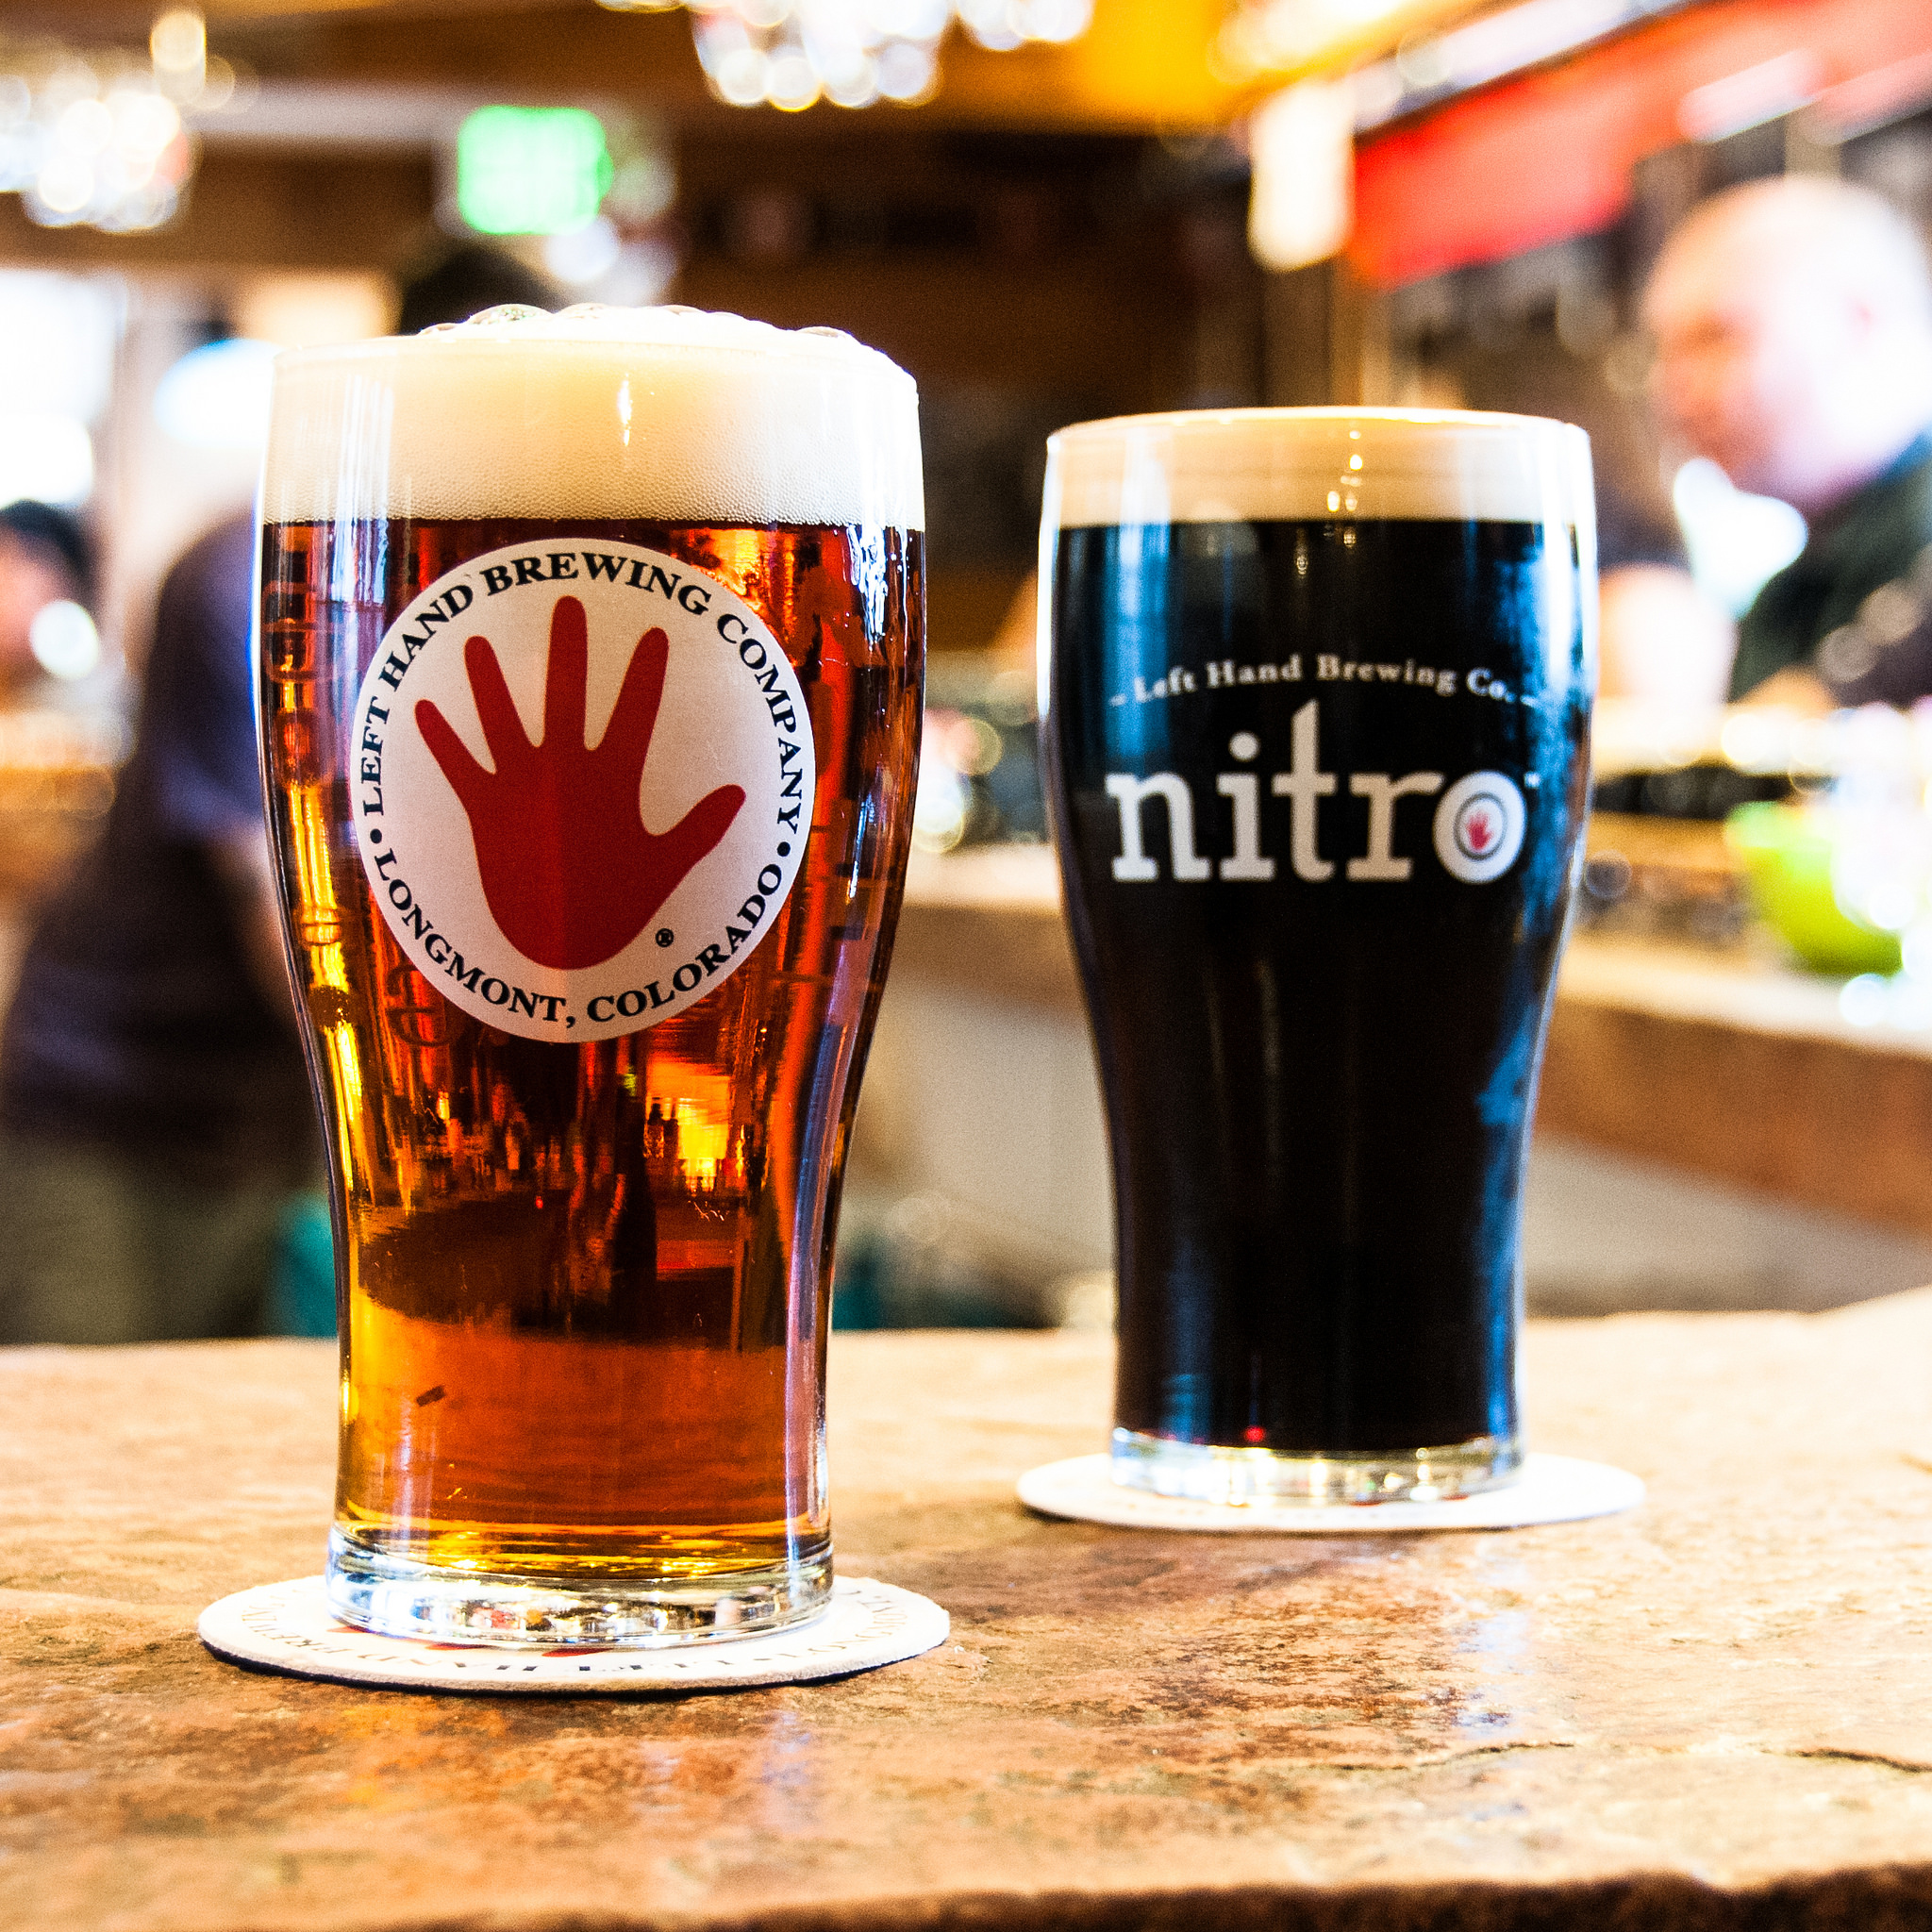 The Nitro brews of Left Hand Brewing Co. are headed to a shelf in Nevada soon.